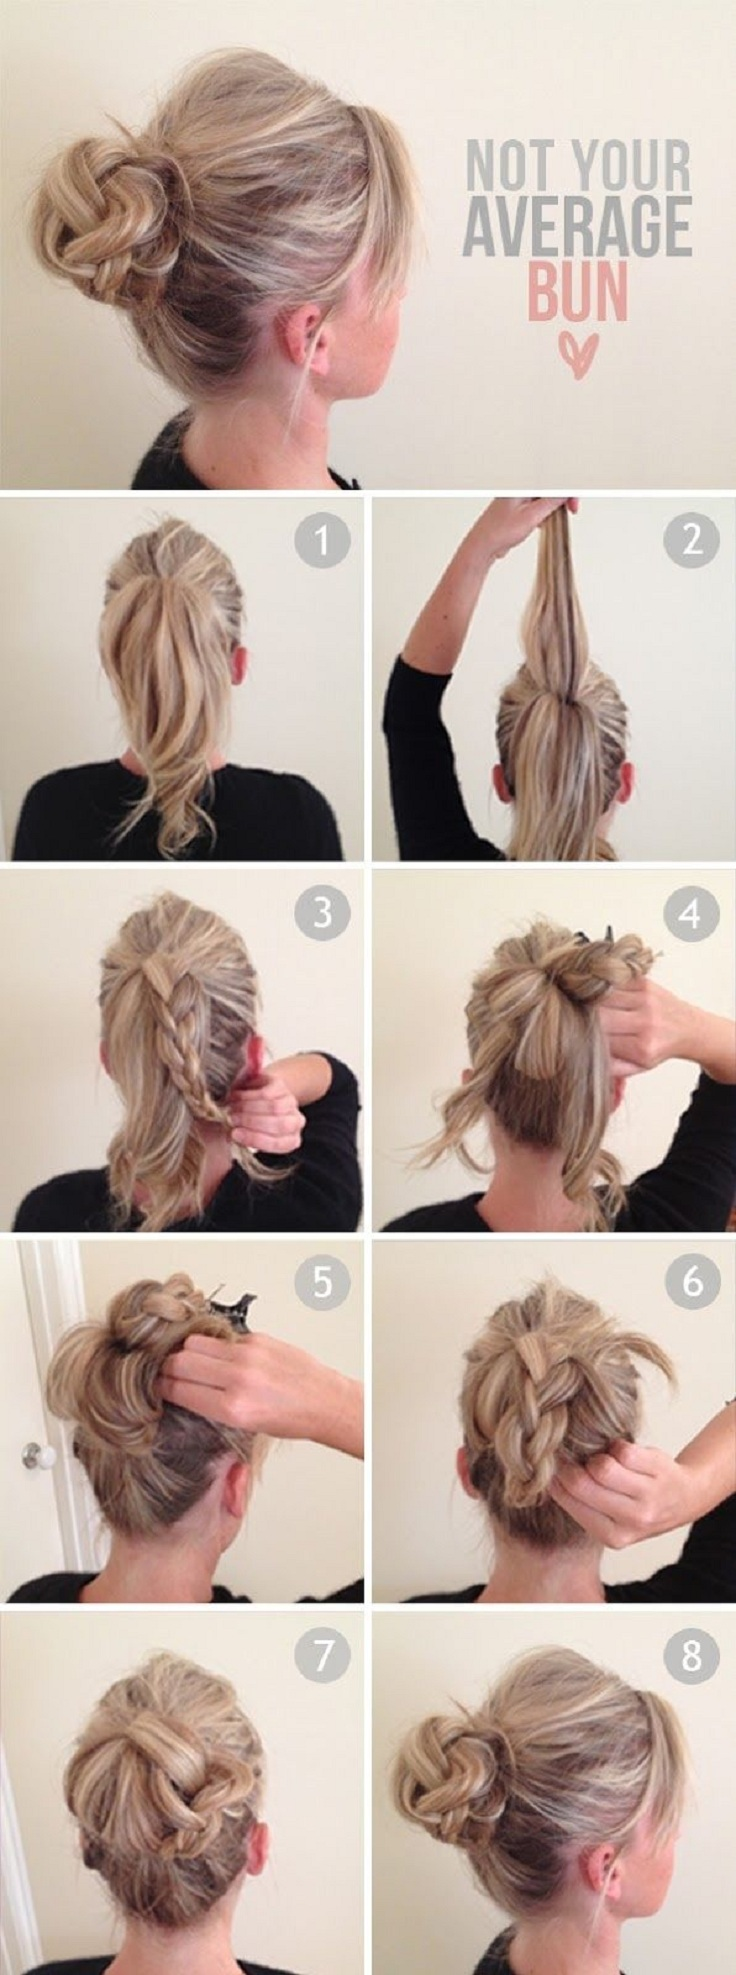 women hairstyle ideas tutorial step by step